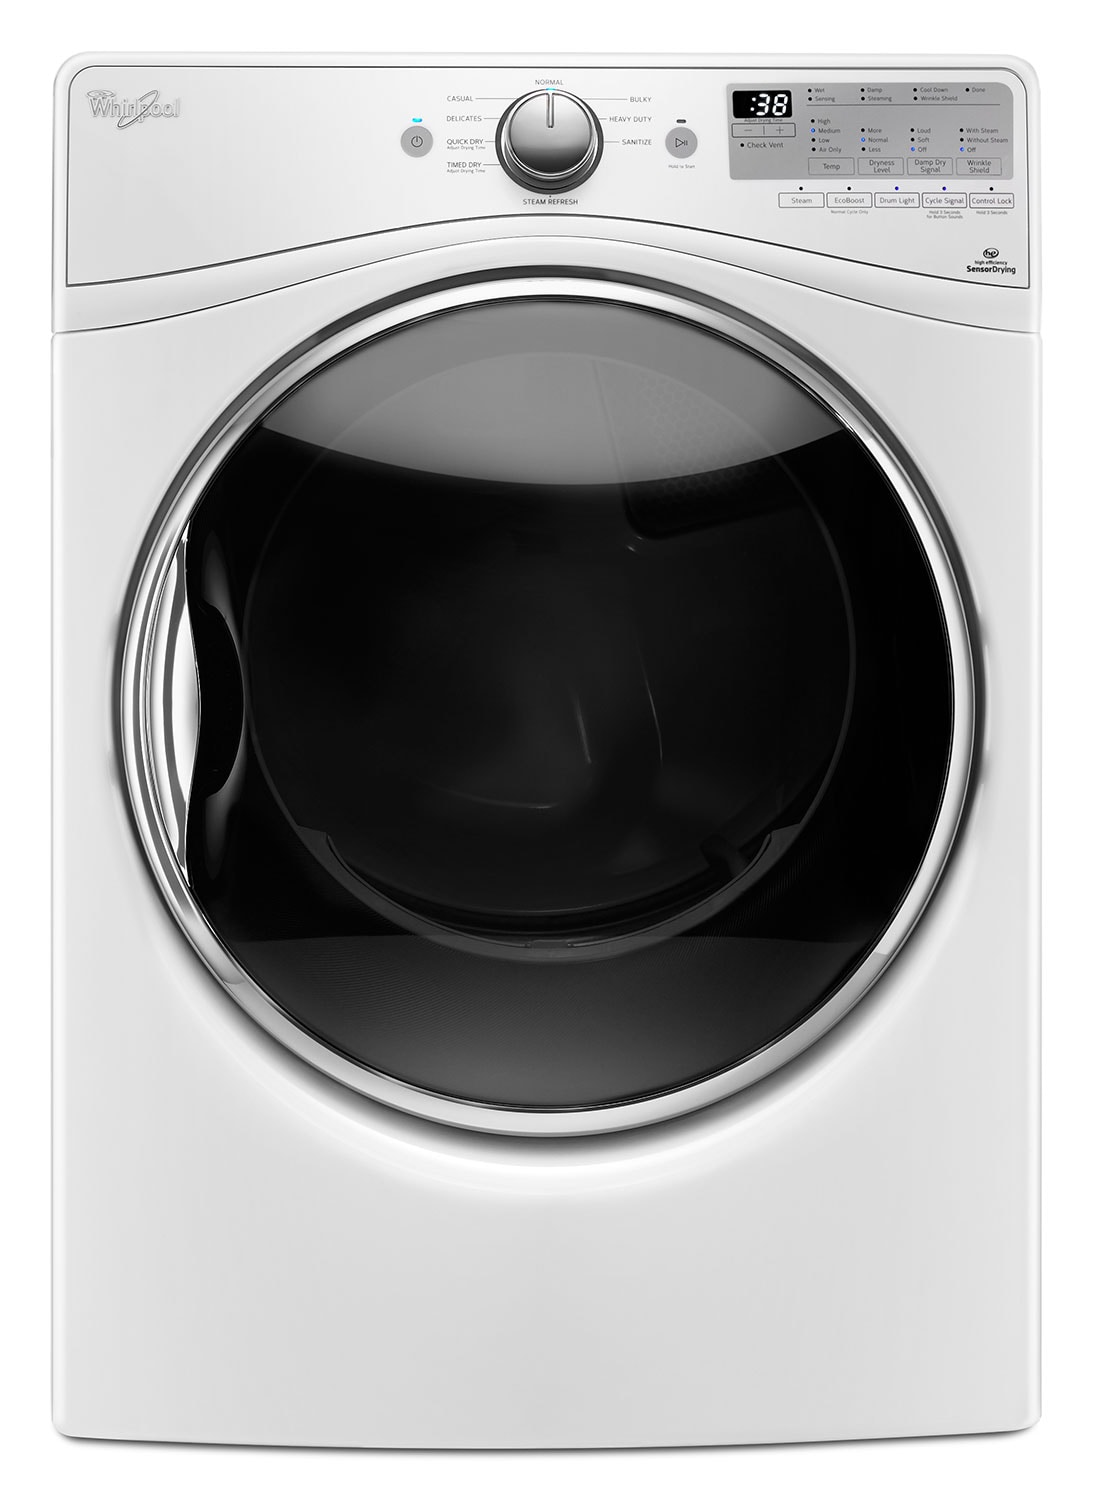 Washers and Dryers - Whirlpool 7.4 Cu. Ft. Gas Dryer – WGD90HEFW